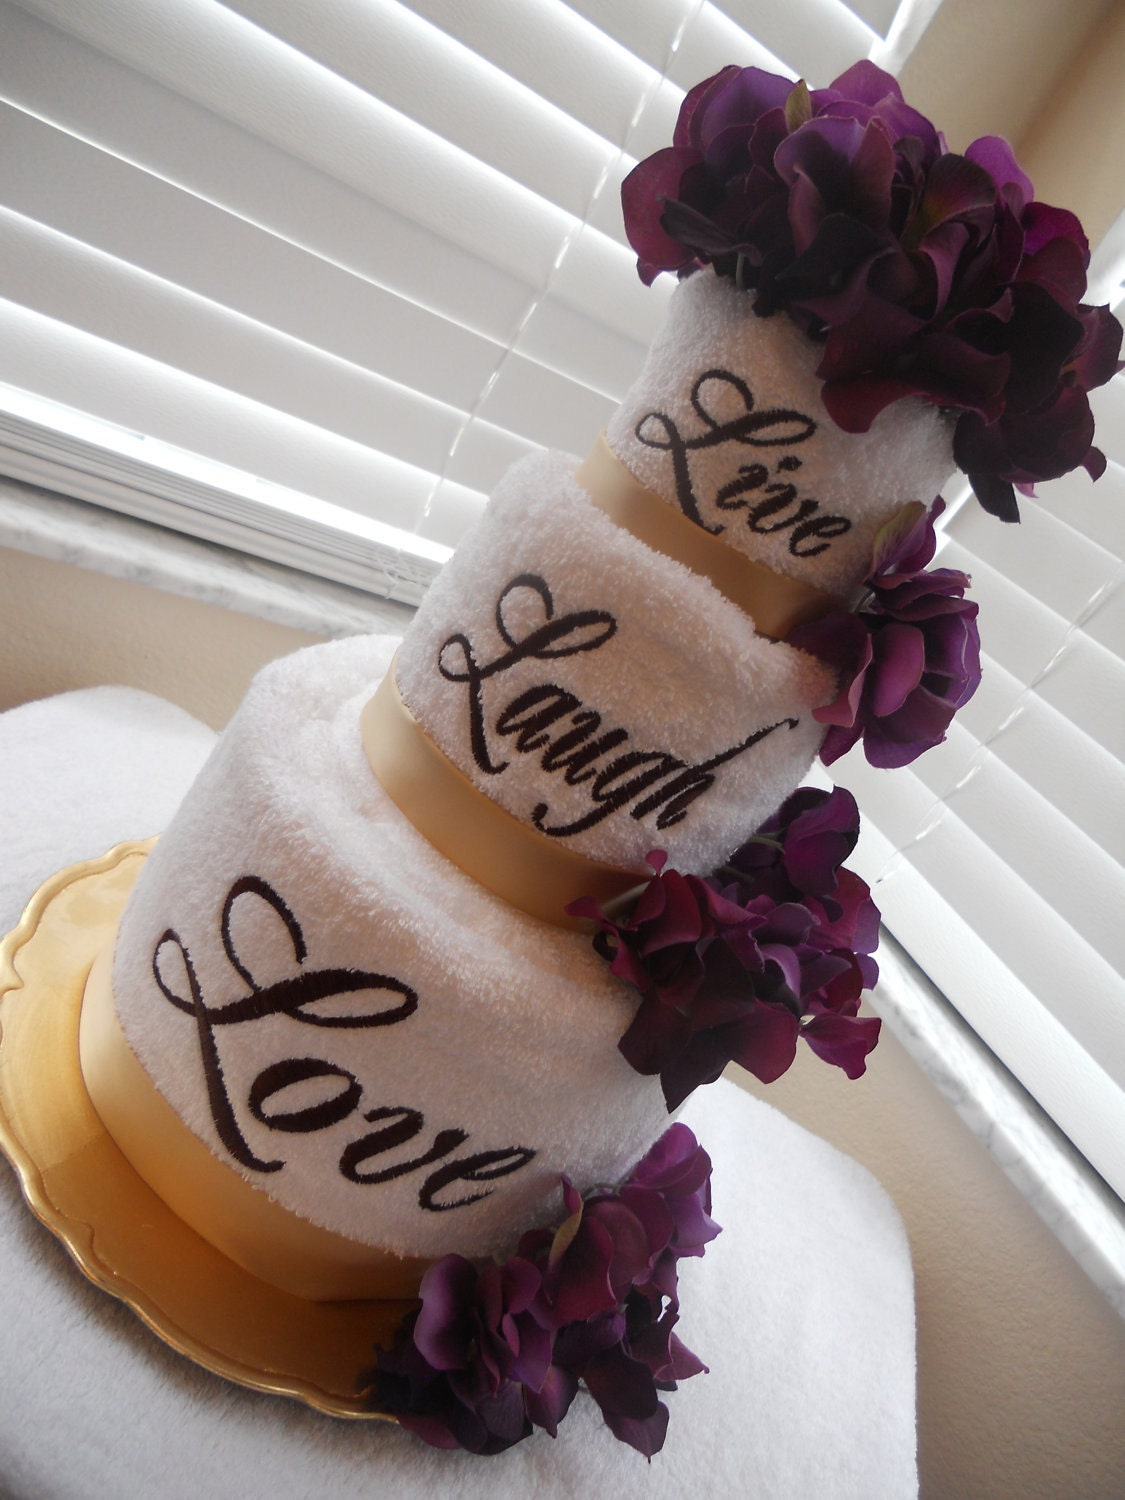 Live Laugh Love Double Layered Embroidered Towel Cake In